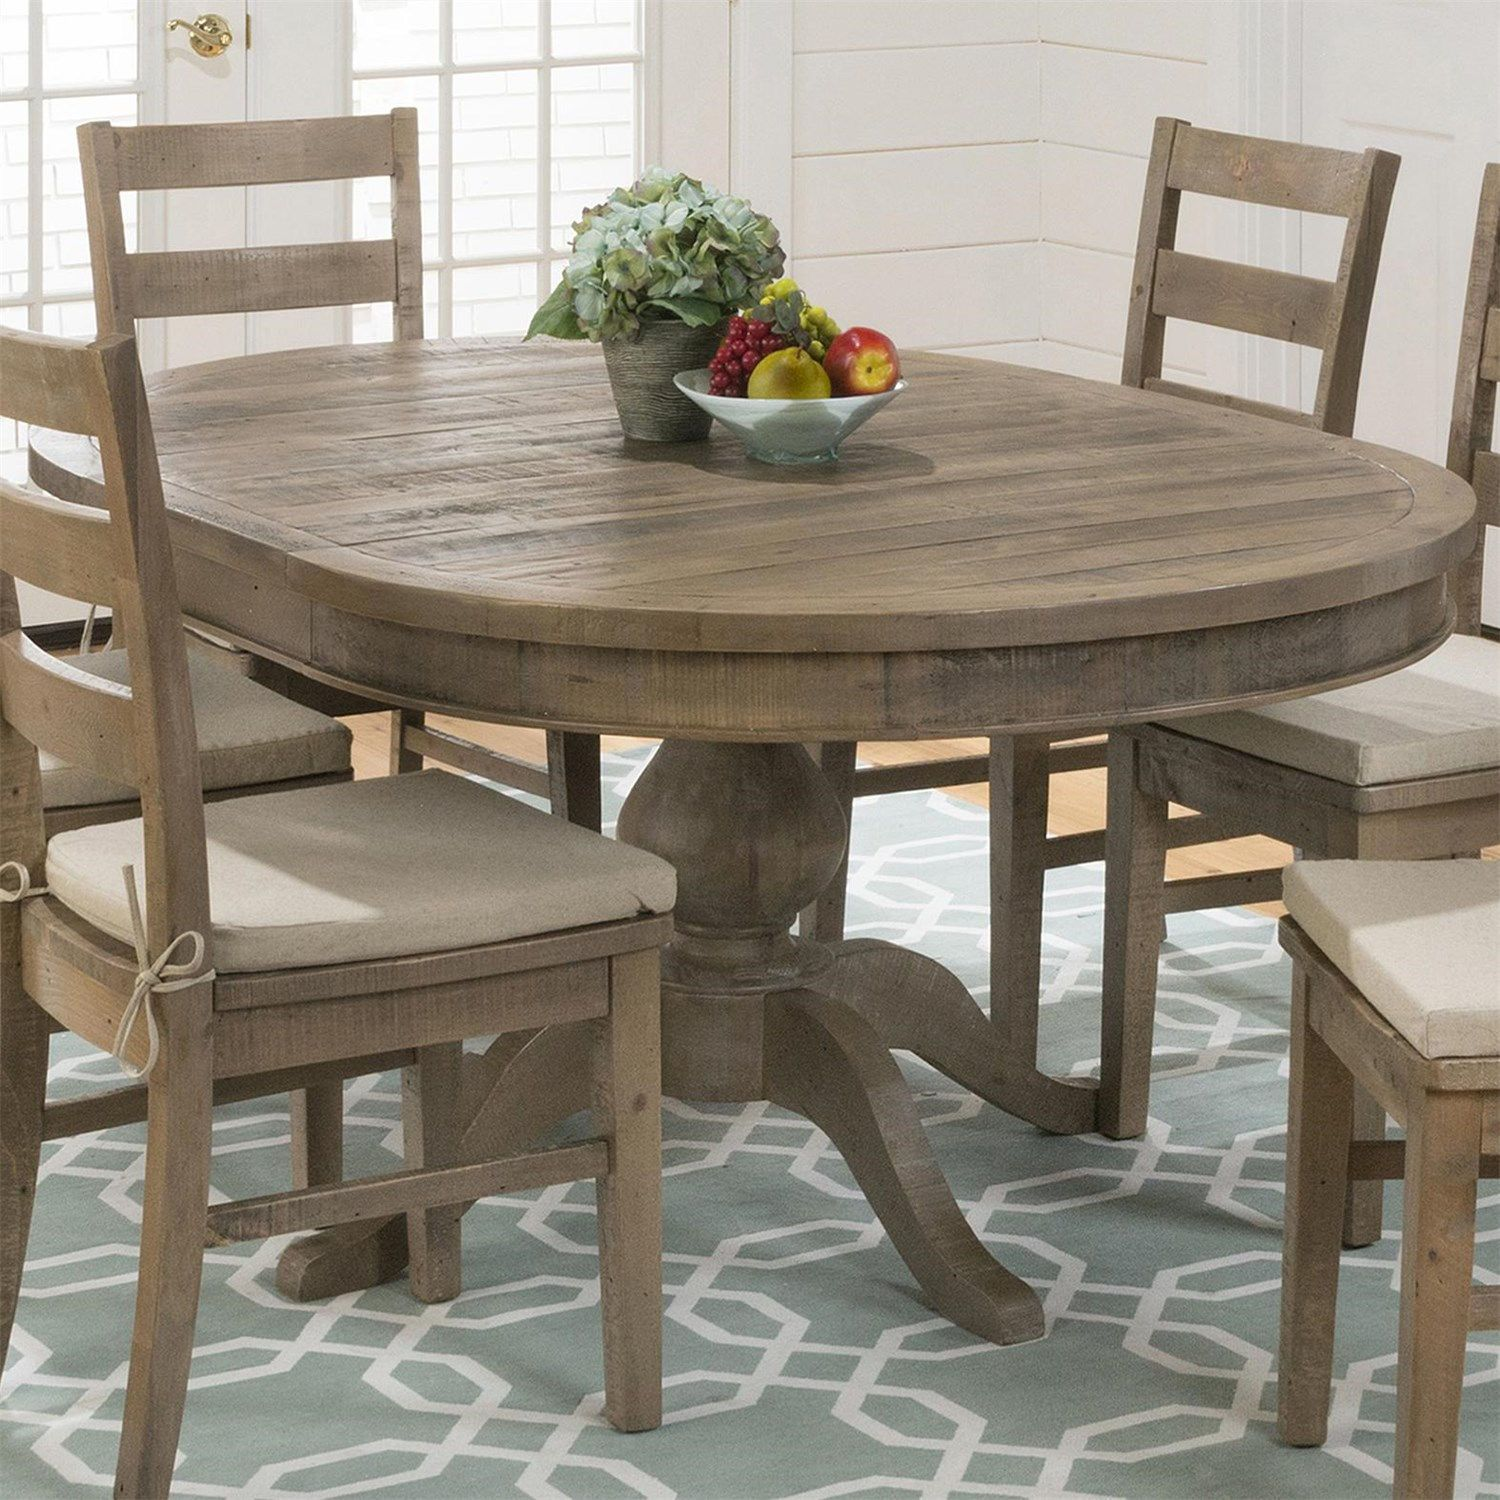 Jofran 94166 Slater Mill Pine Reclaimed Pine Round To Oval Dining Extraordinary Oval Dining Room Table Sets Decorating Inspiration